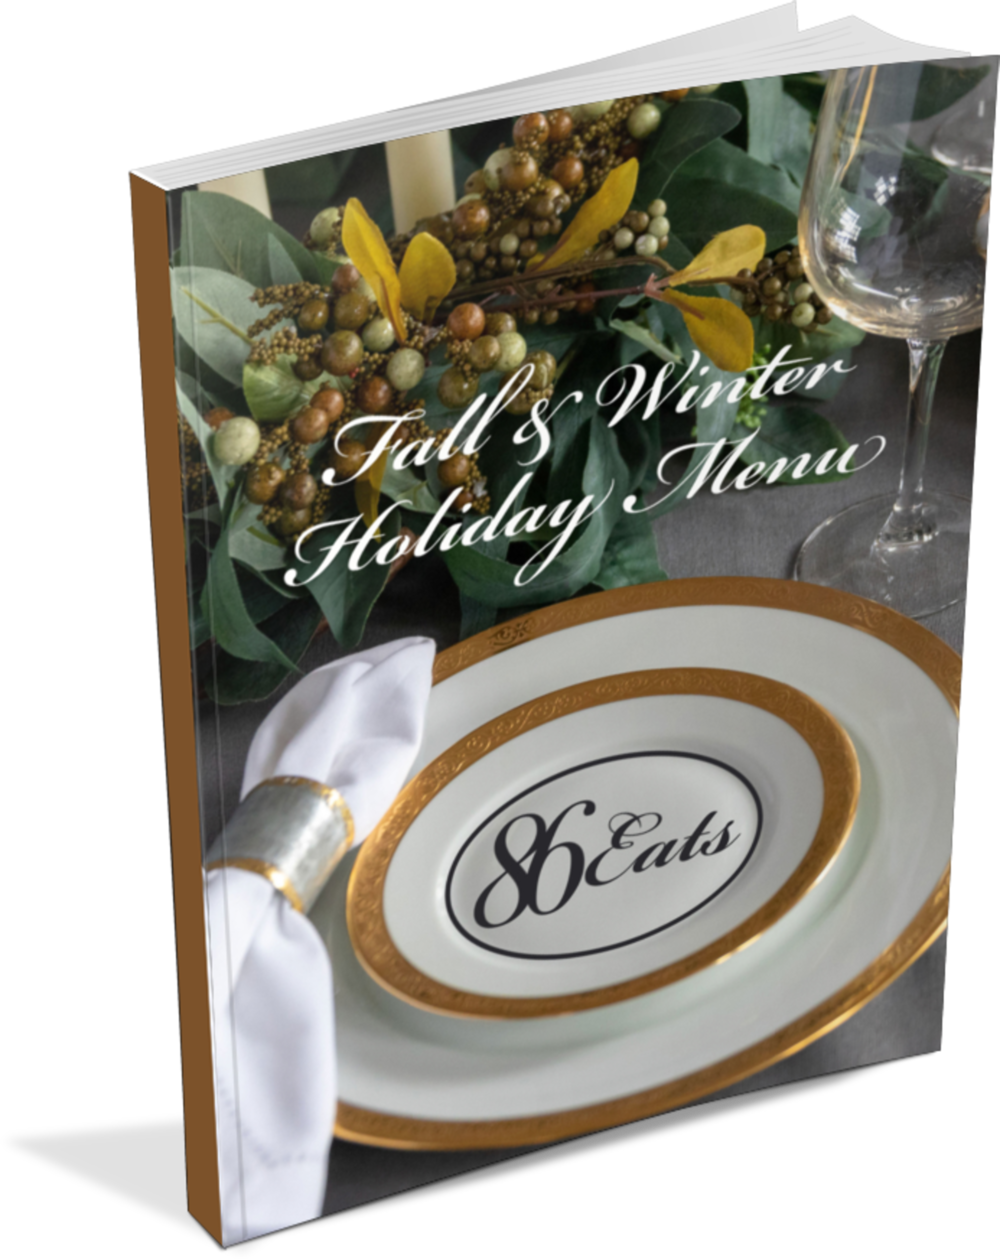 PREVIEW OUR NEW E-BOOK , an 18 recipe - plant based fall & winter holiday menu with bonus video content.